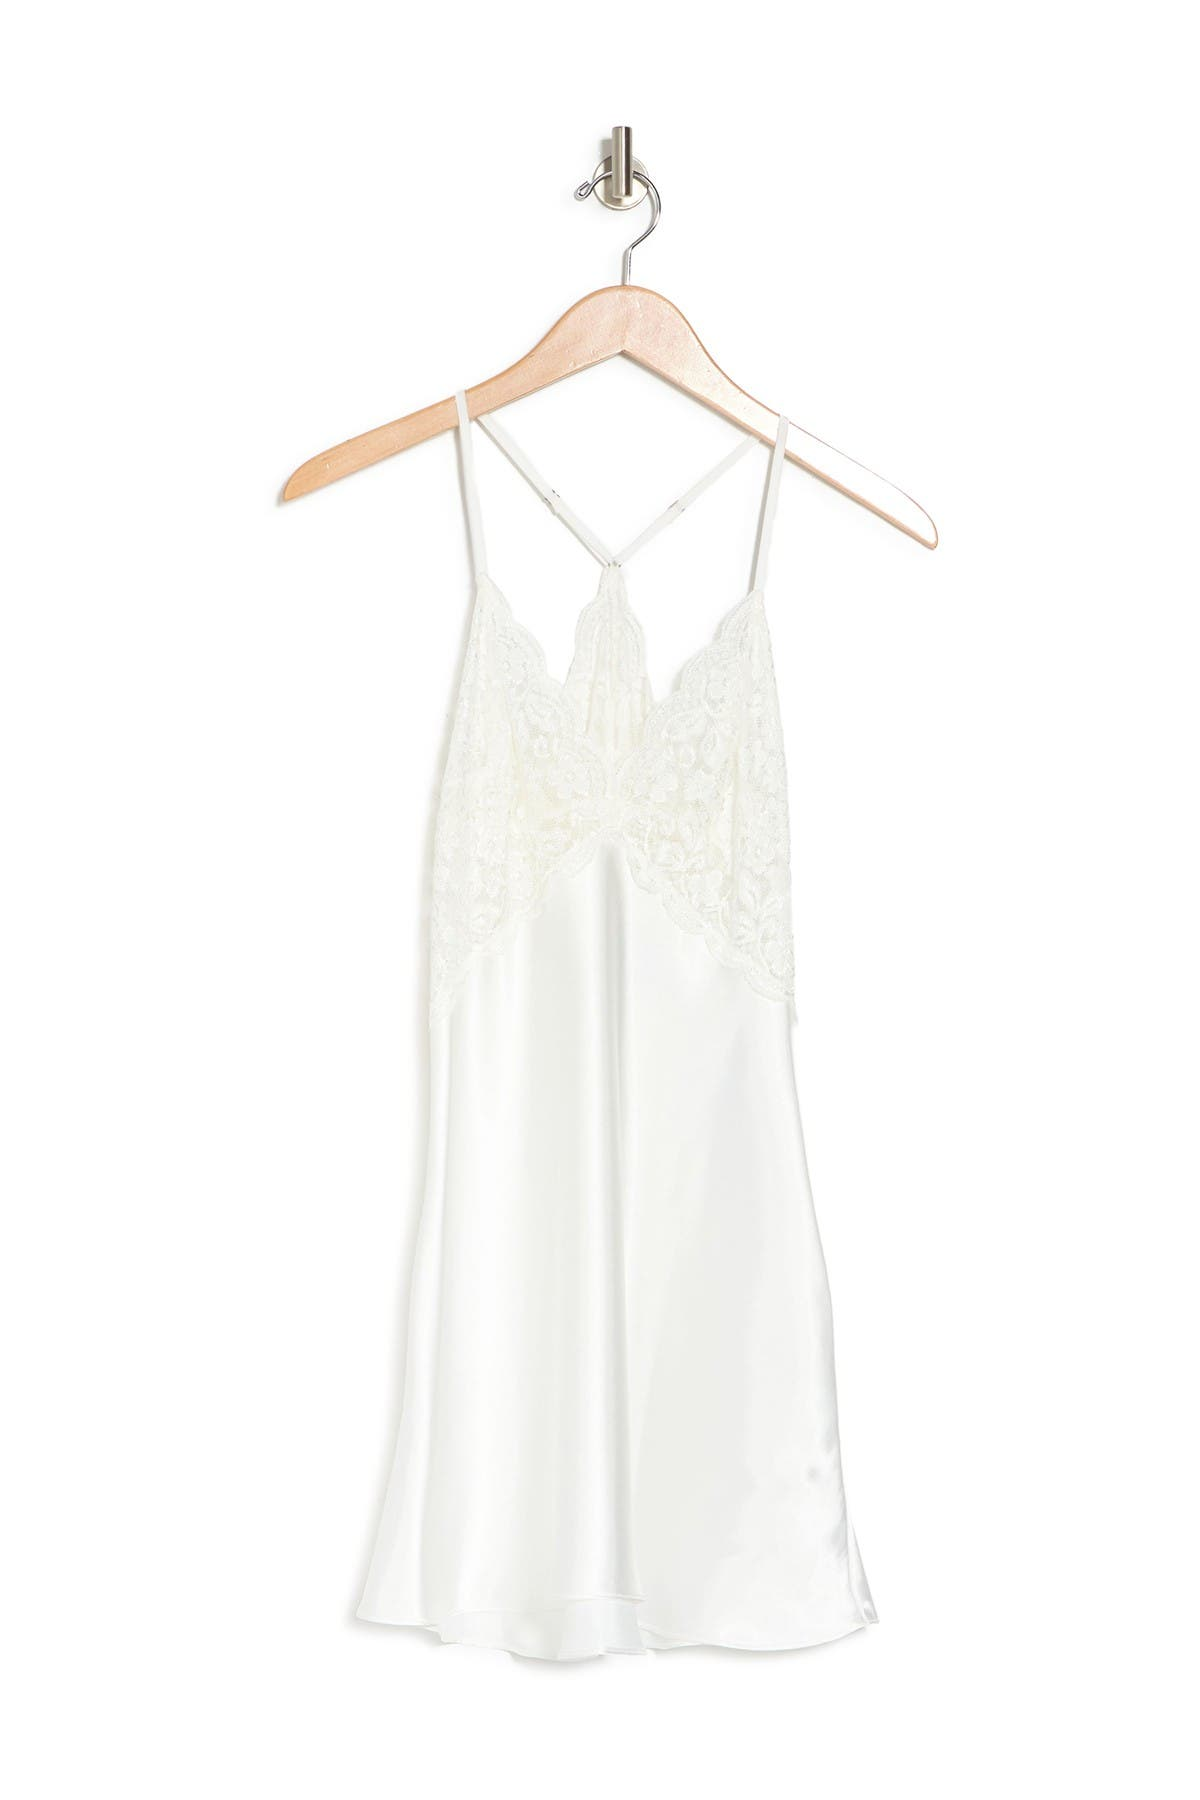 In Bloom By Jonquil WORDS OF LOVE SATIN & LACE CHEMISE